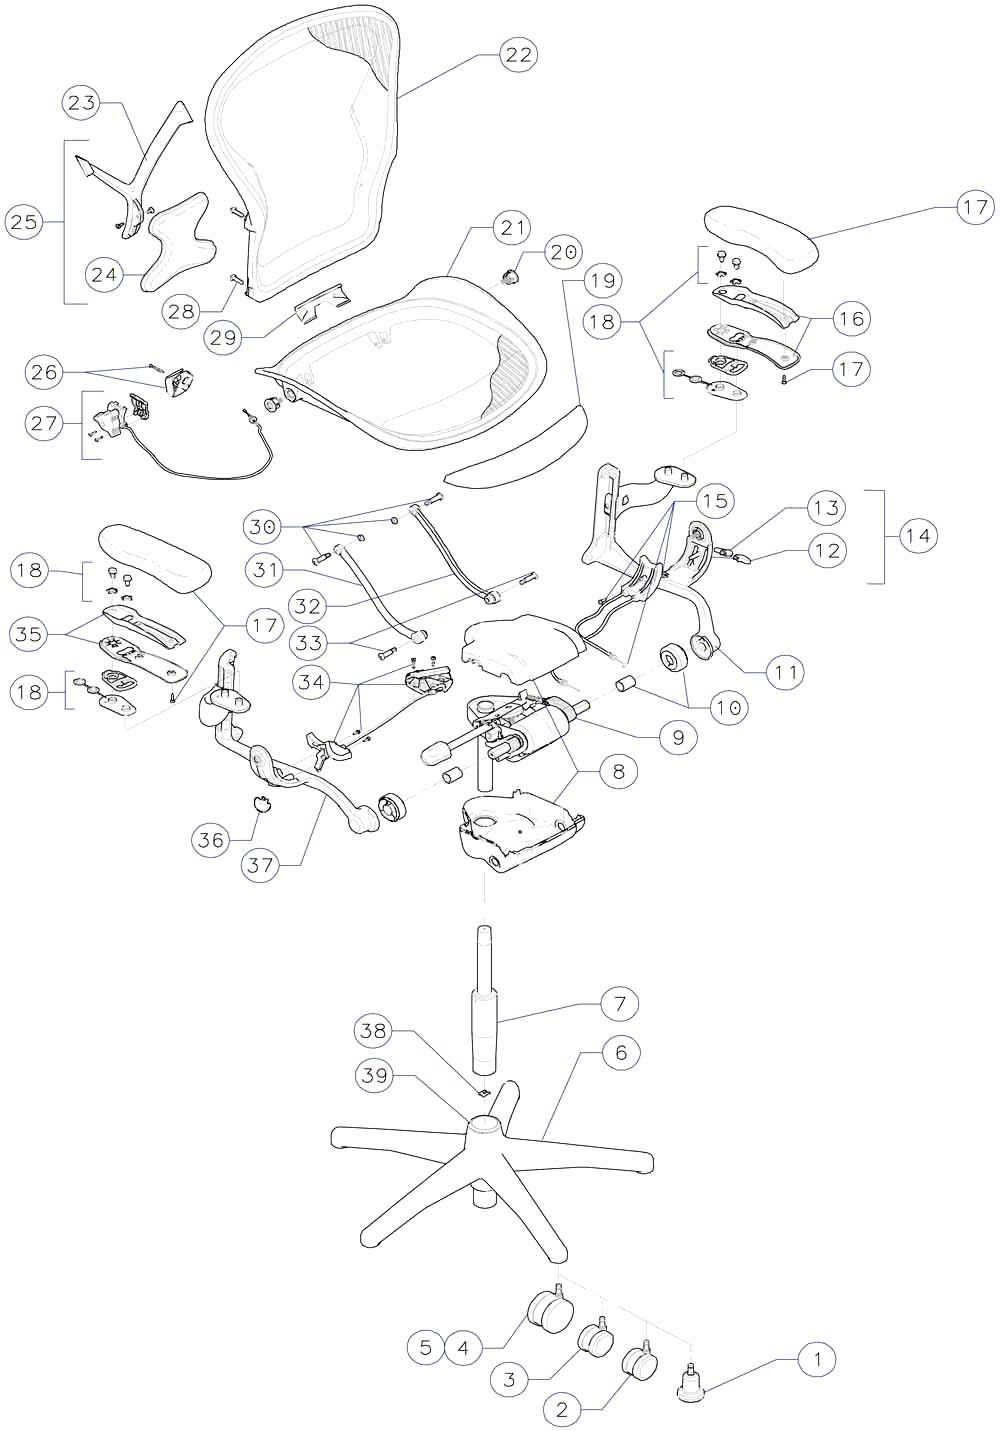 Steelcase Leap Chair Parts Diagram